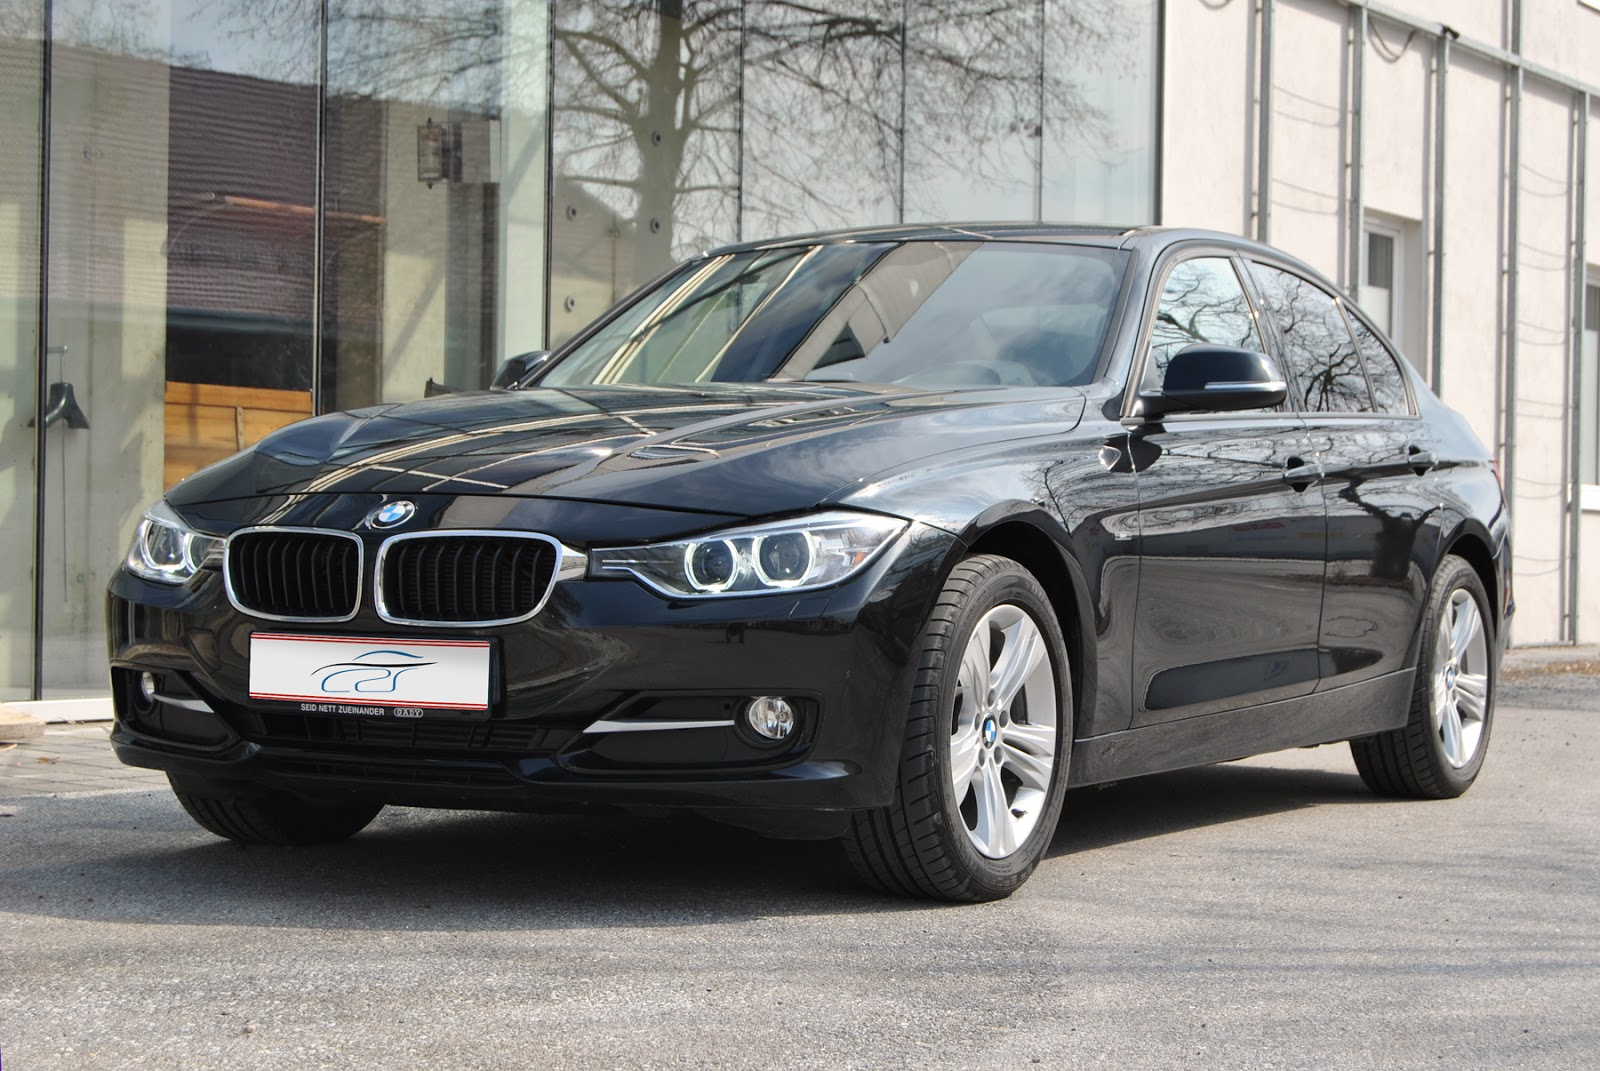 ait cars bmw 318d automatik mit vollausstattung ez 09 2012 km 143 ps 105 kw. Black Bedroom Furniture Sets. Home Design Ideas